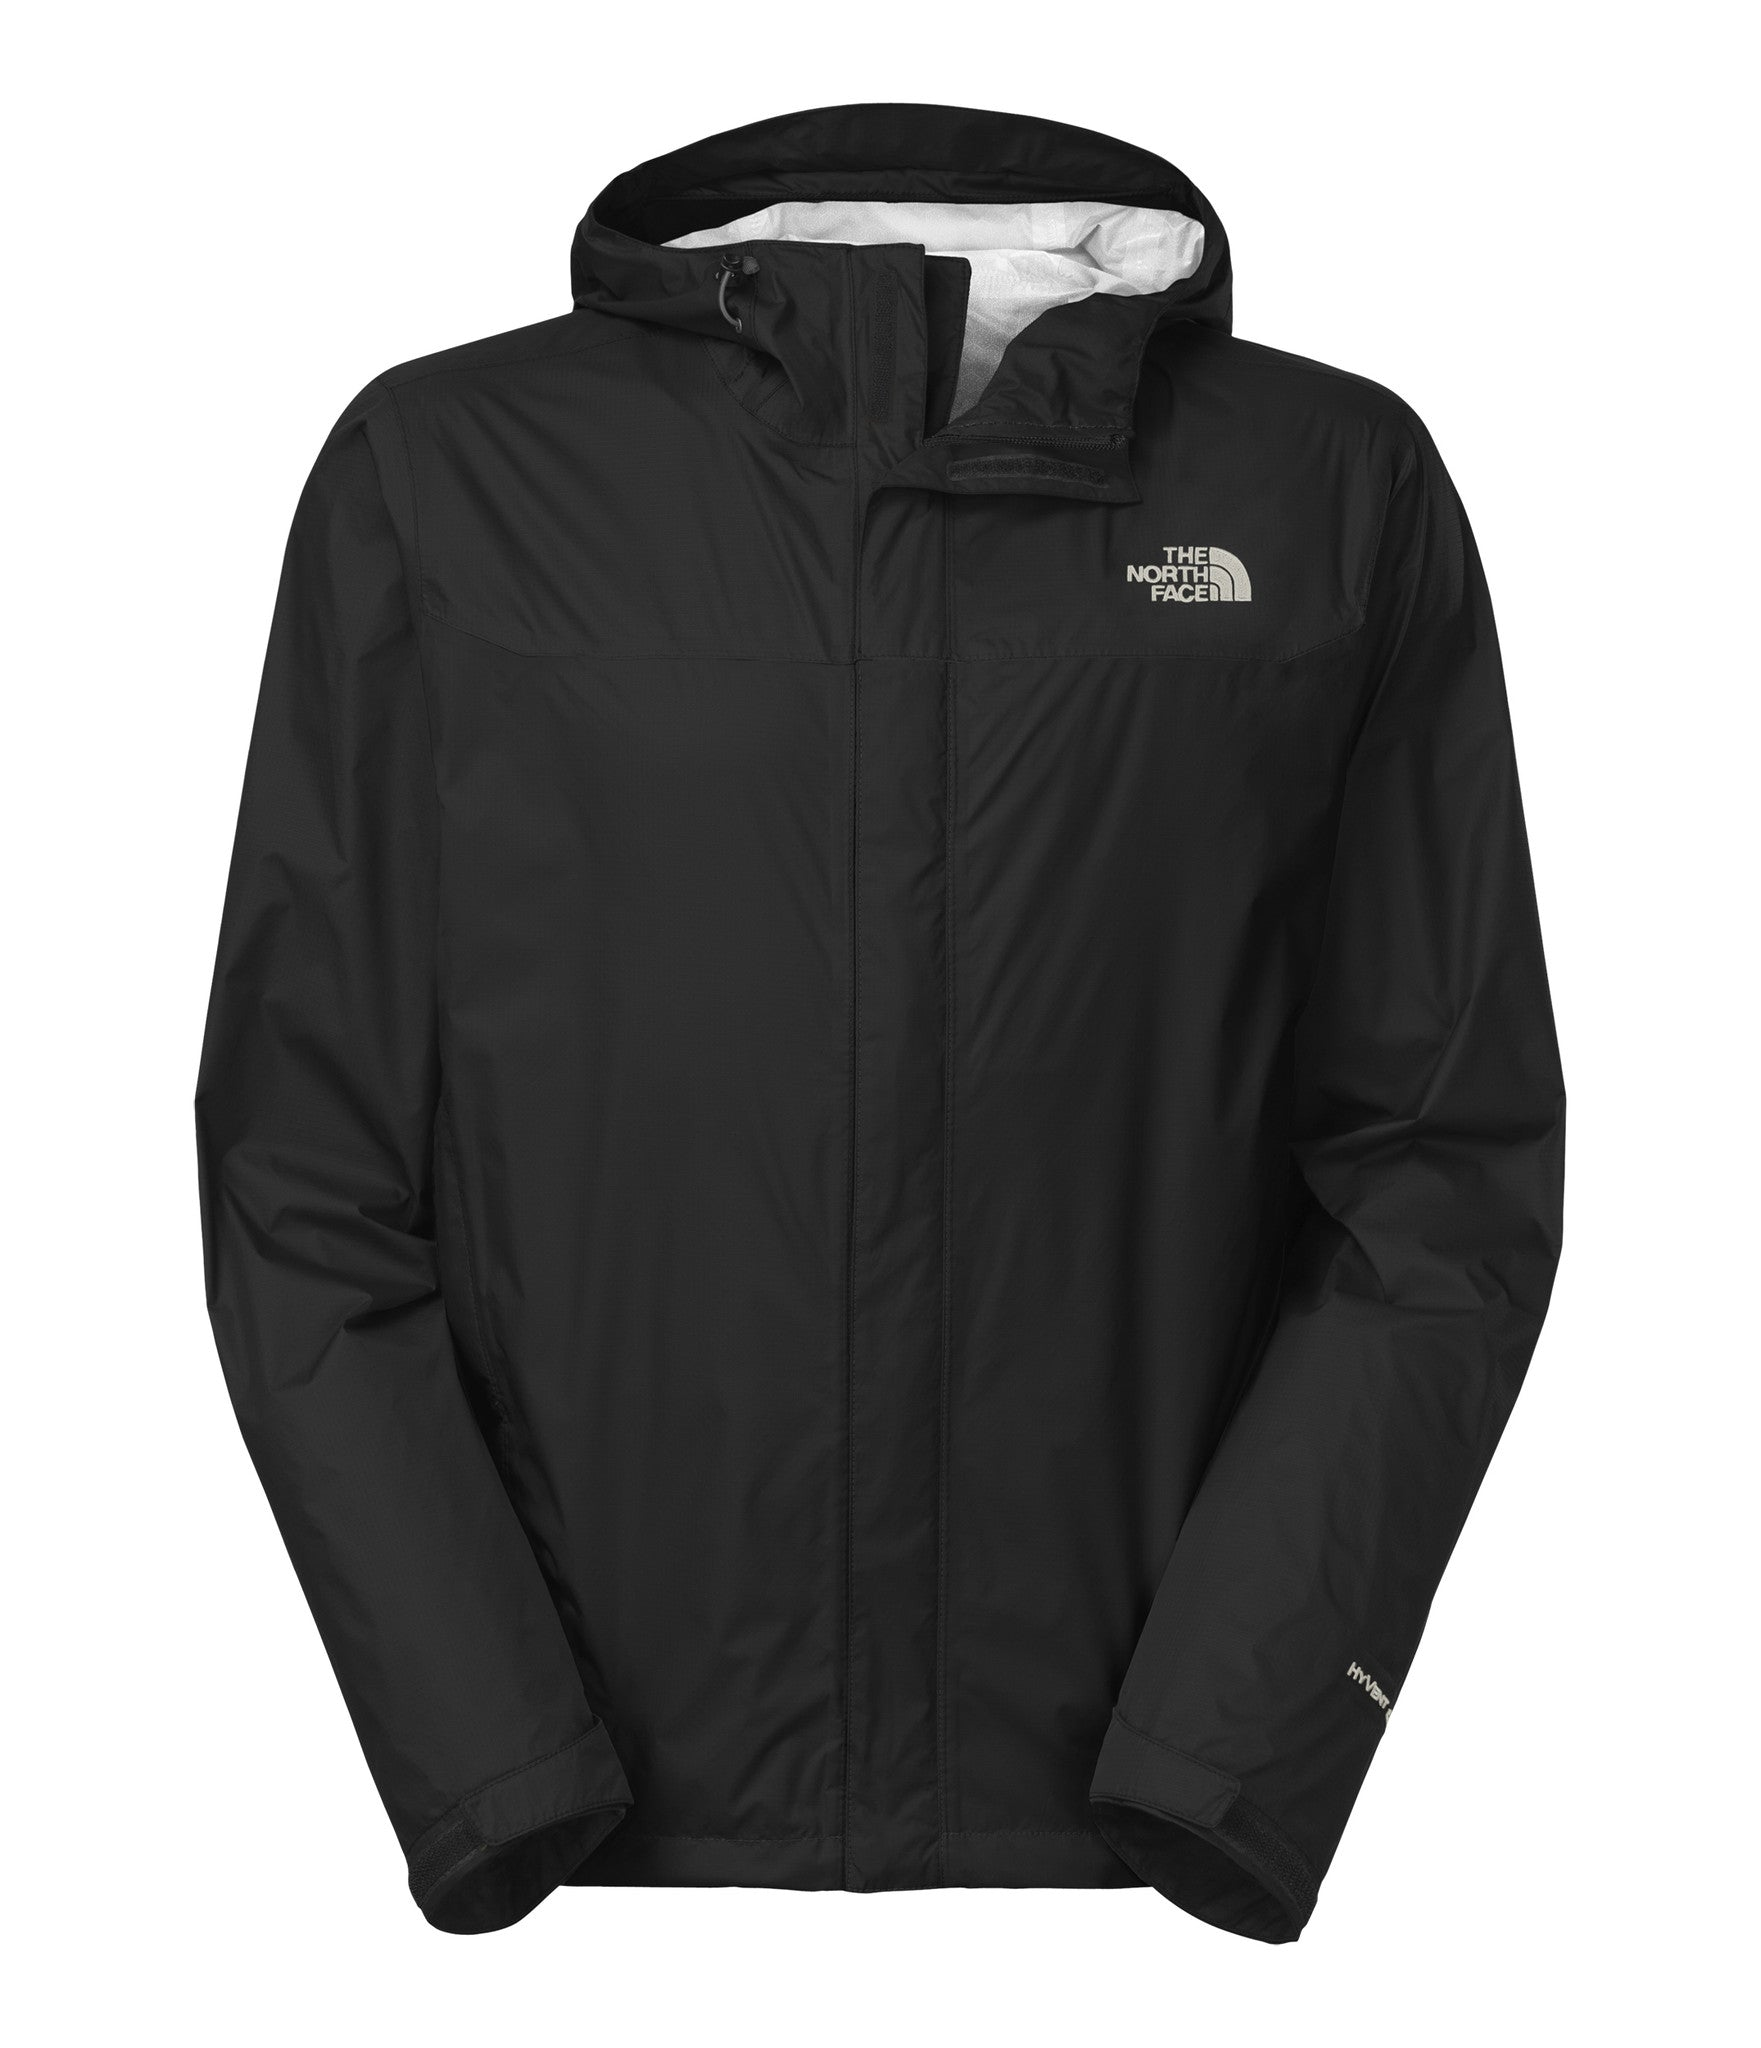 The North Face Men's Venture Jacket in TNF Black/TNF Black